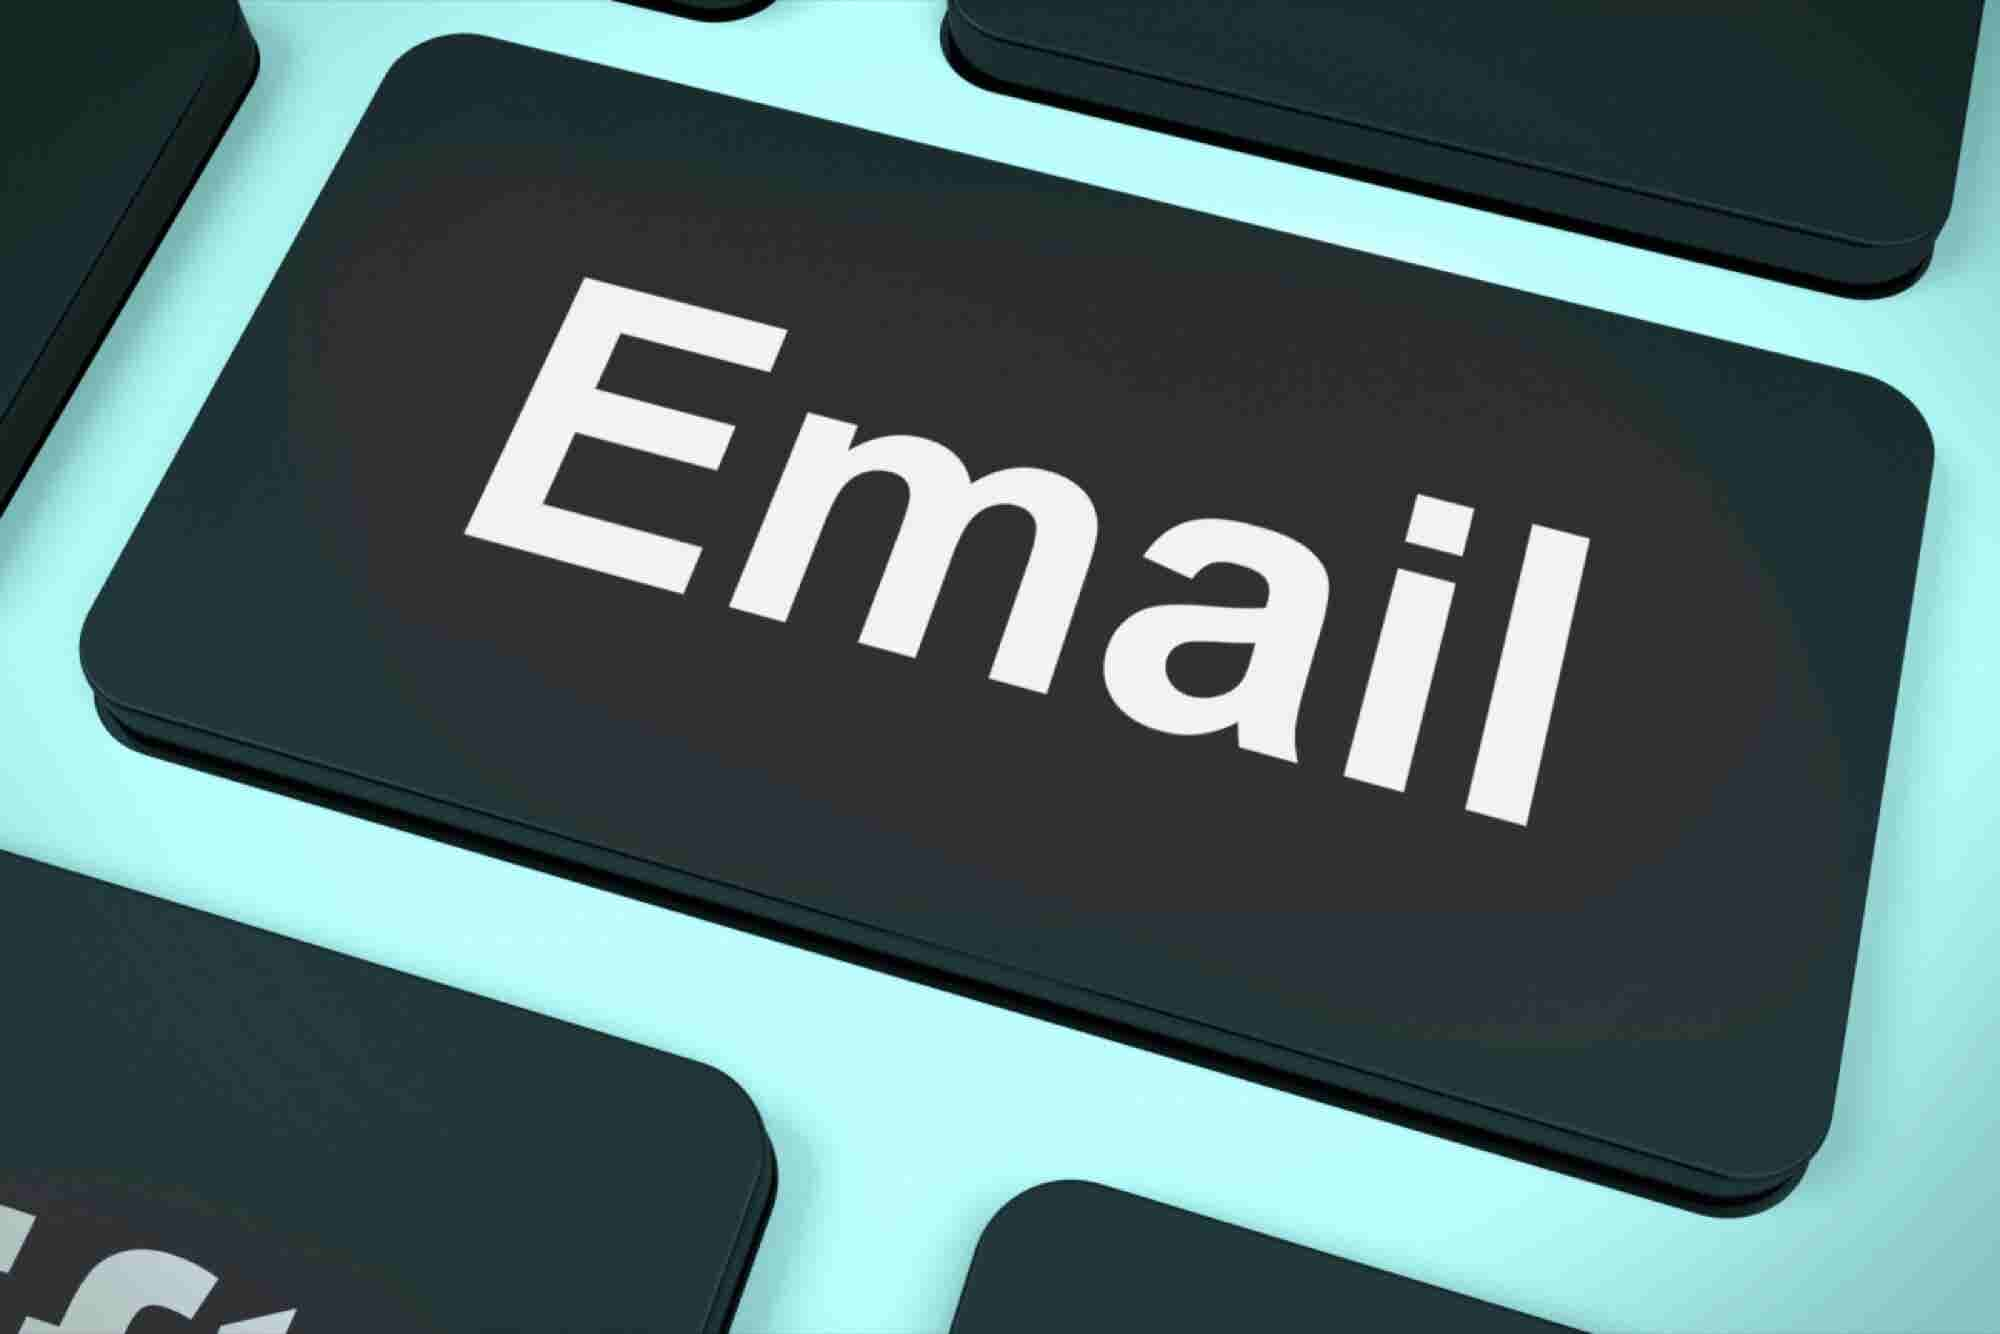 Email Etiquette Mistakes That Can Destroy Your Business